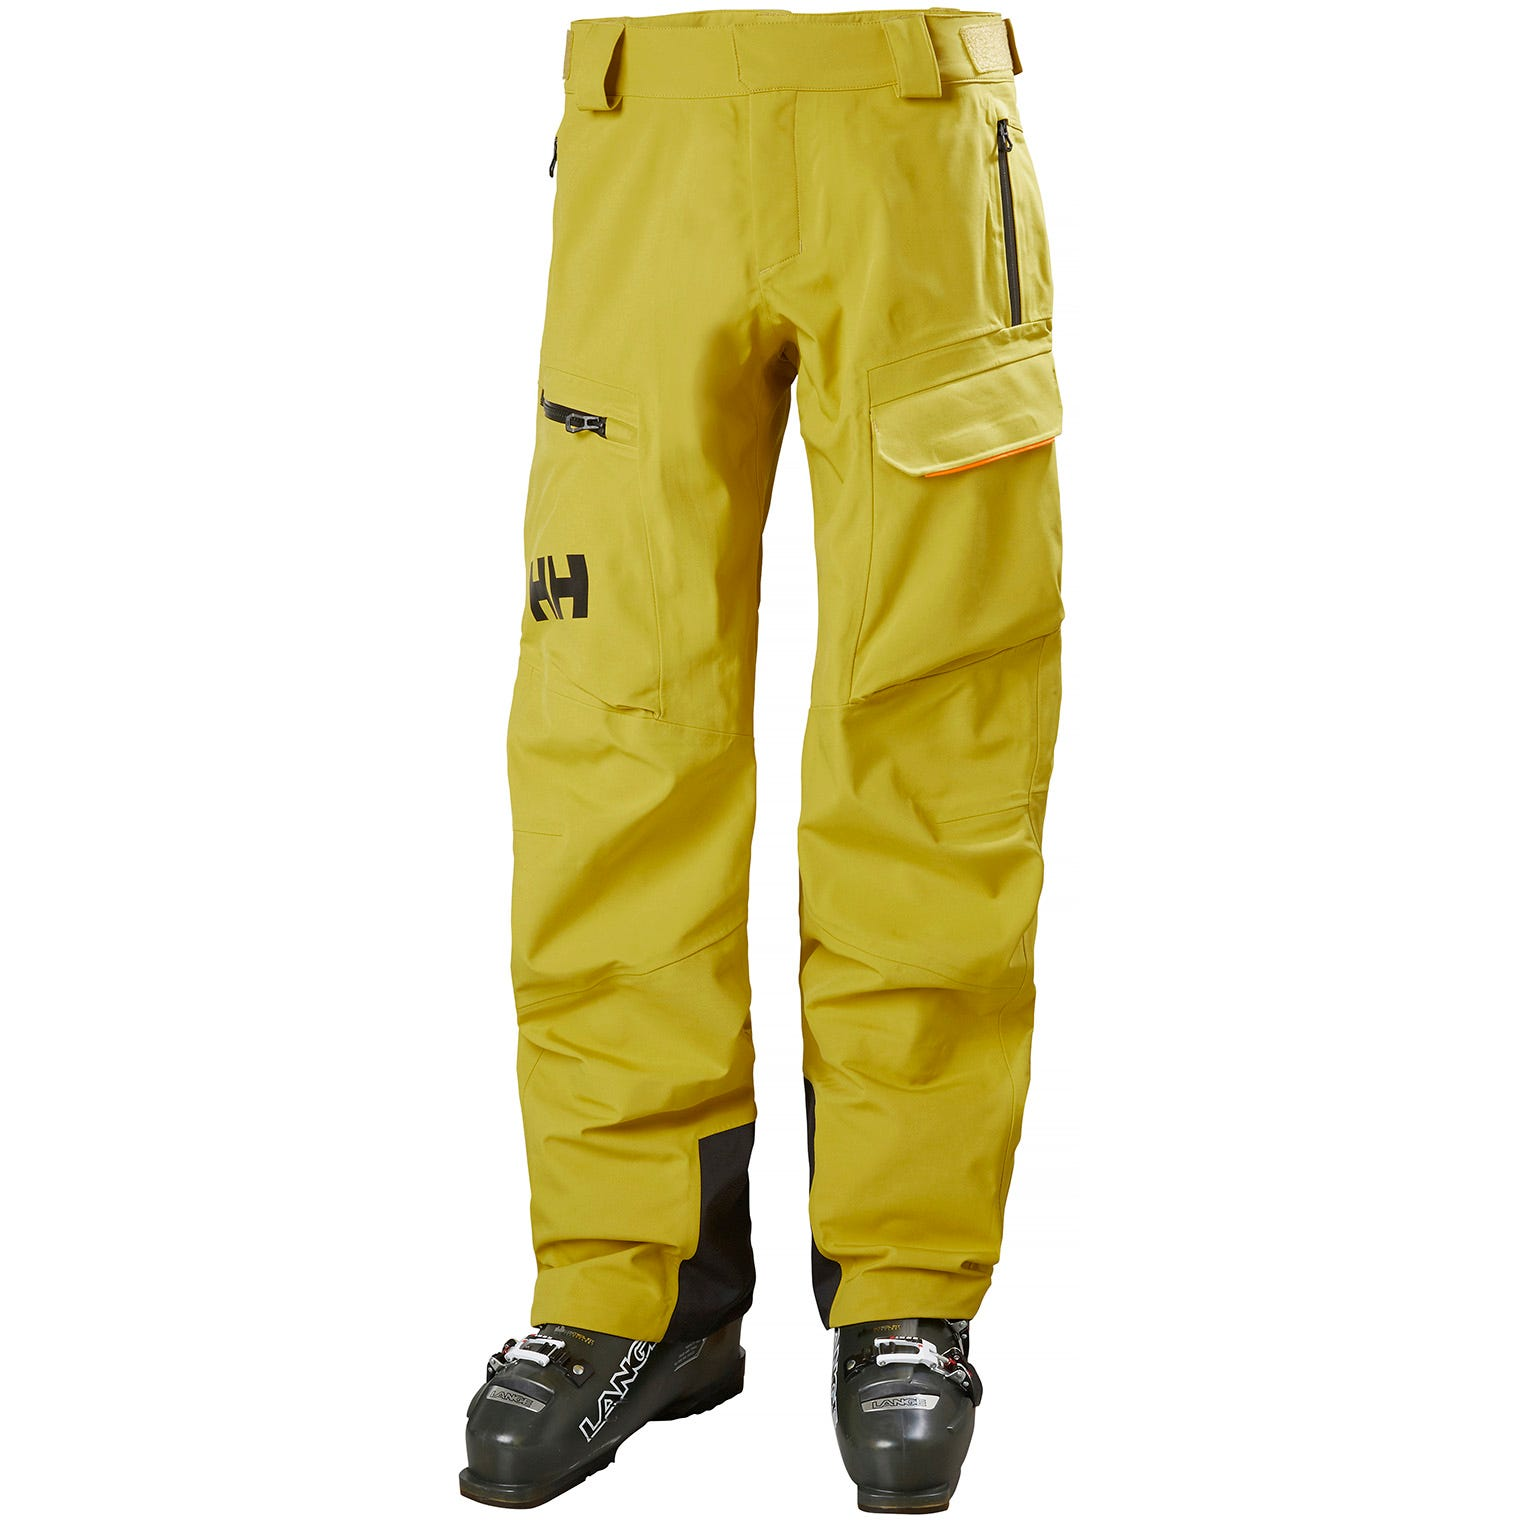 Helly Hansen Mens Ski Trouser Yellow L